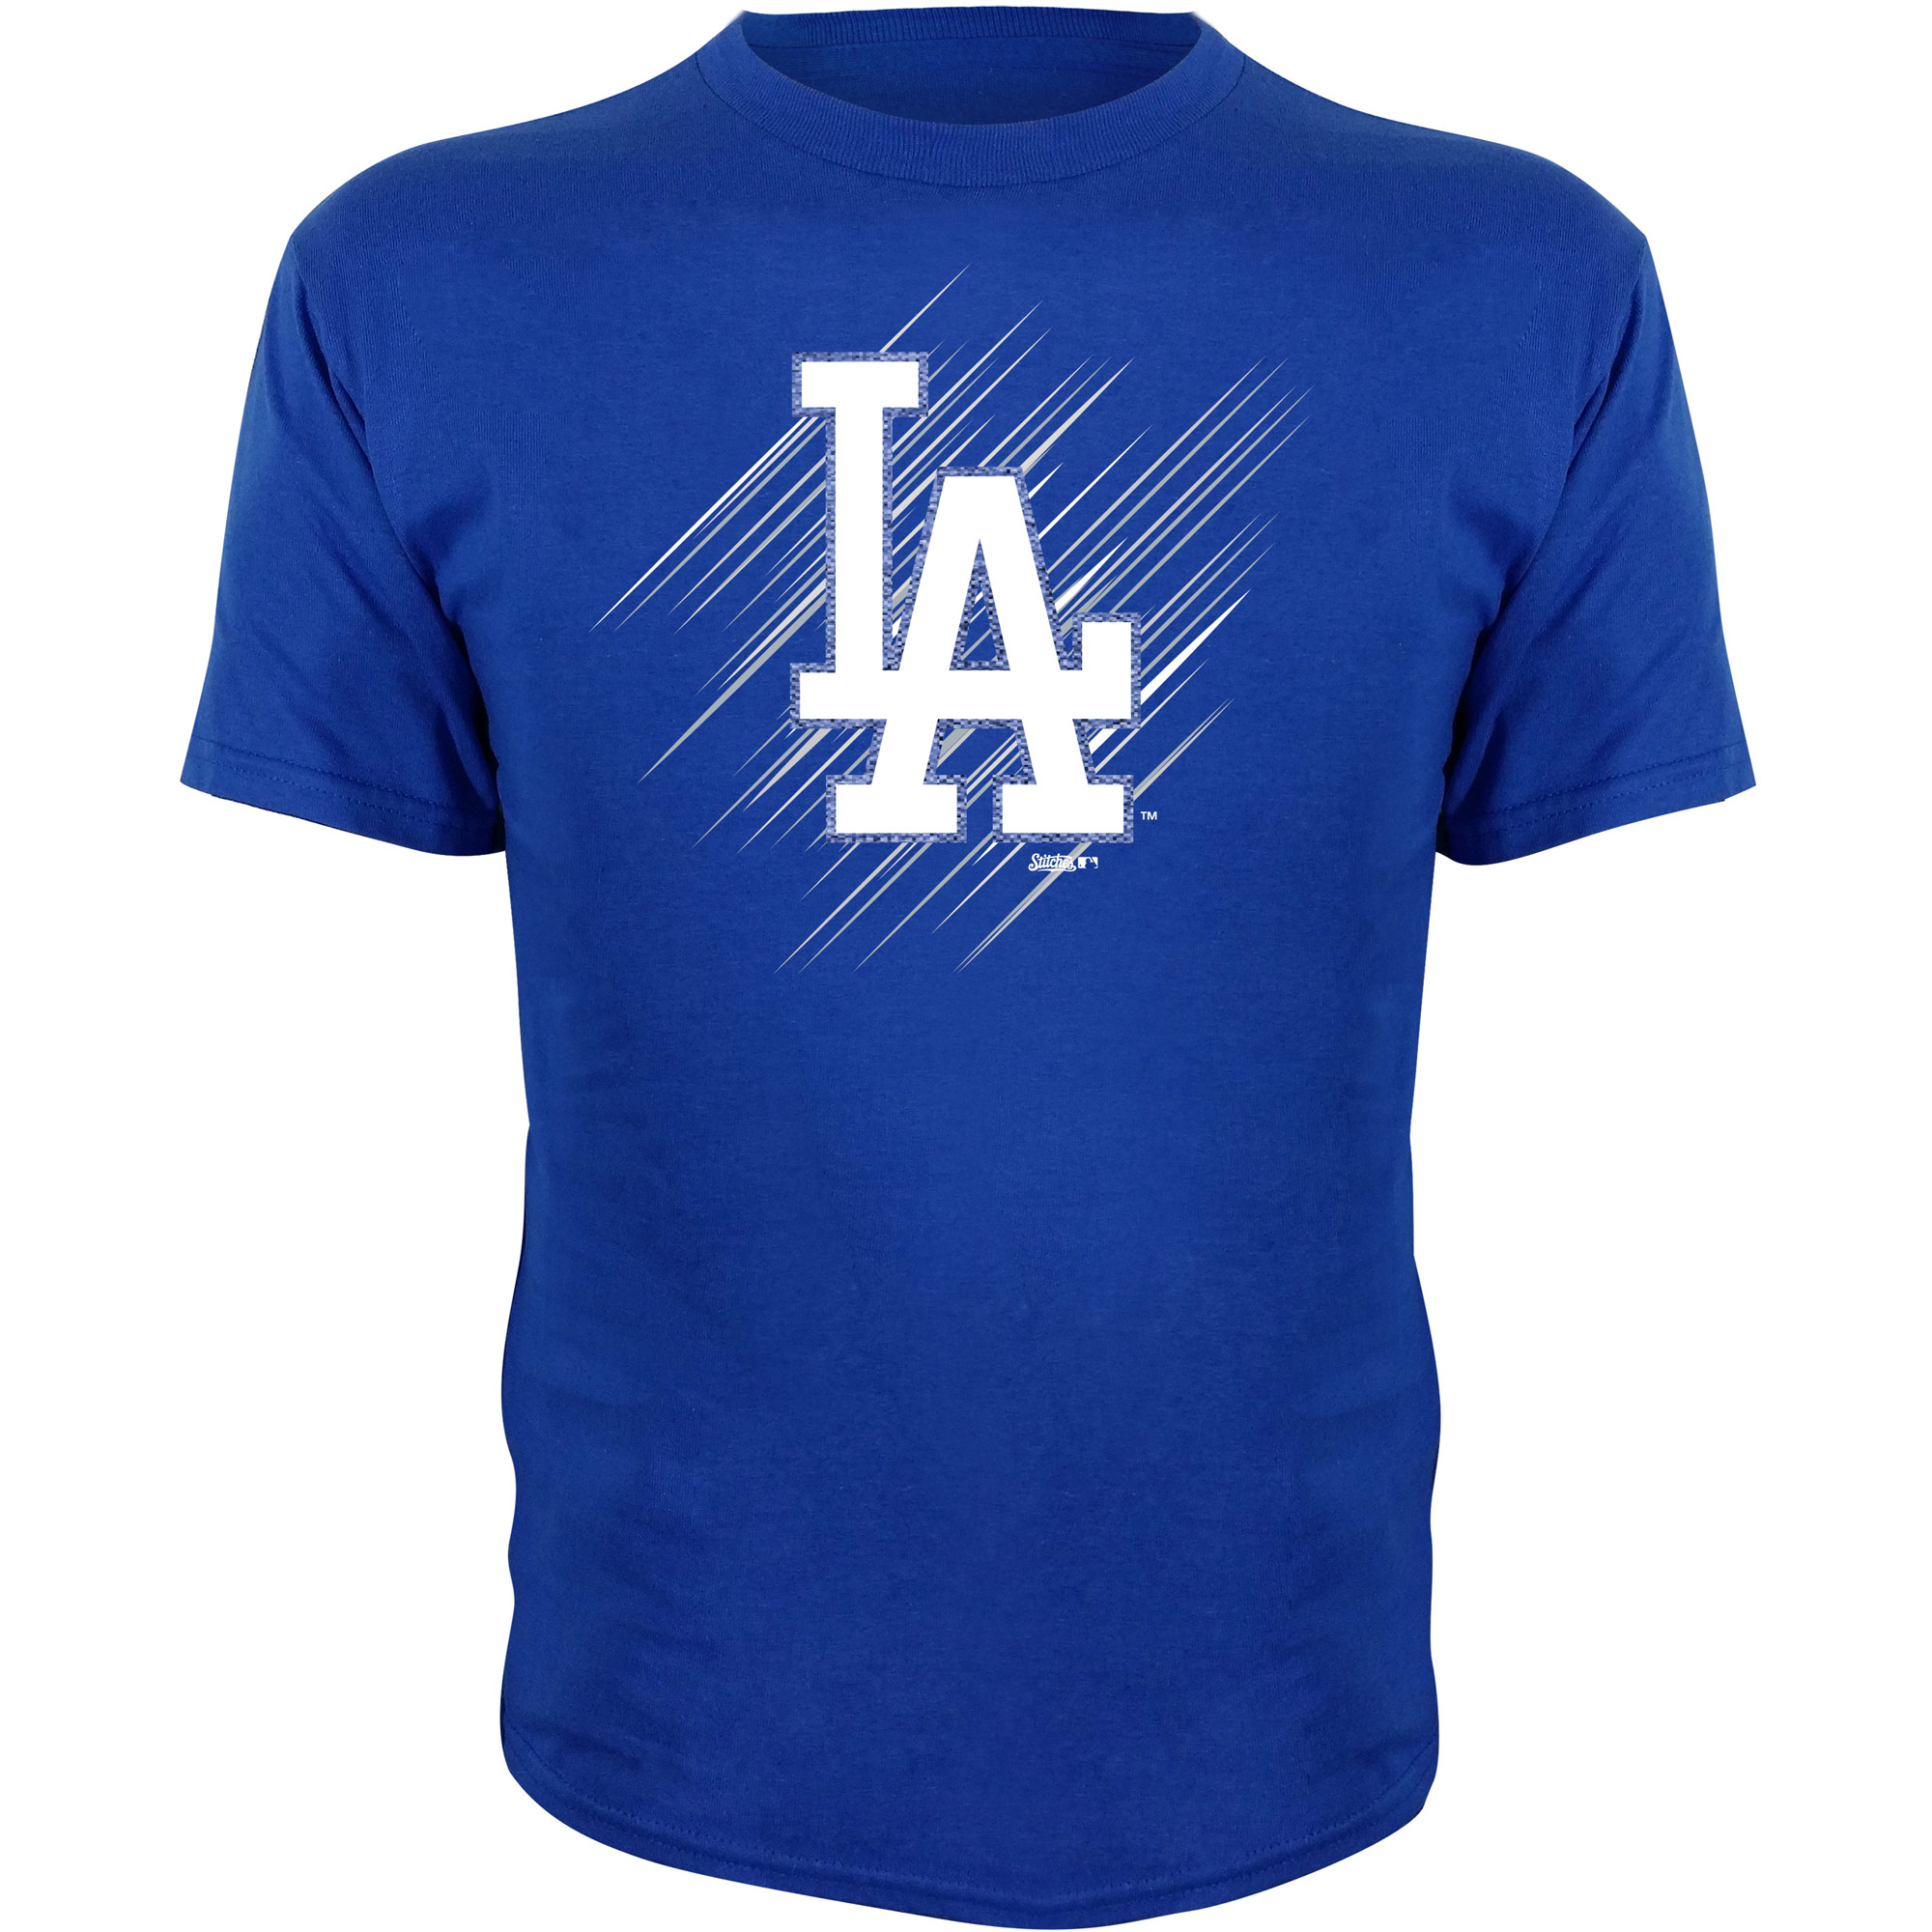 Los Angeles Dodgers Stitches Youth Team Logo T-Shirt - Royal